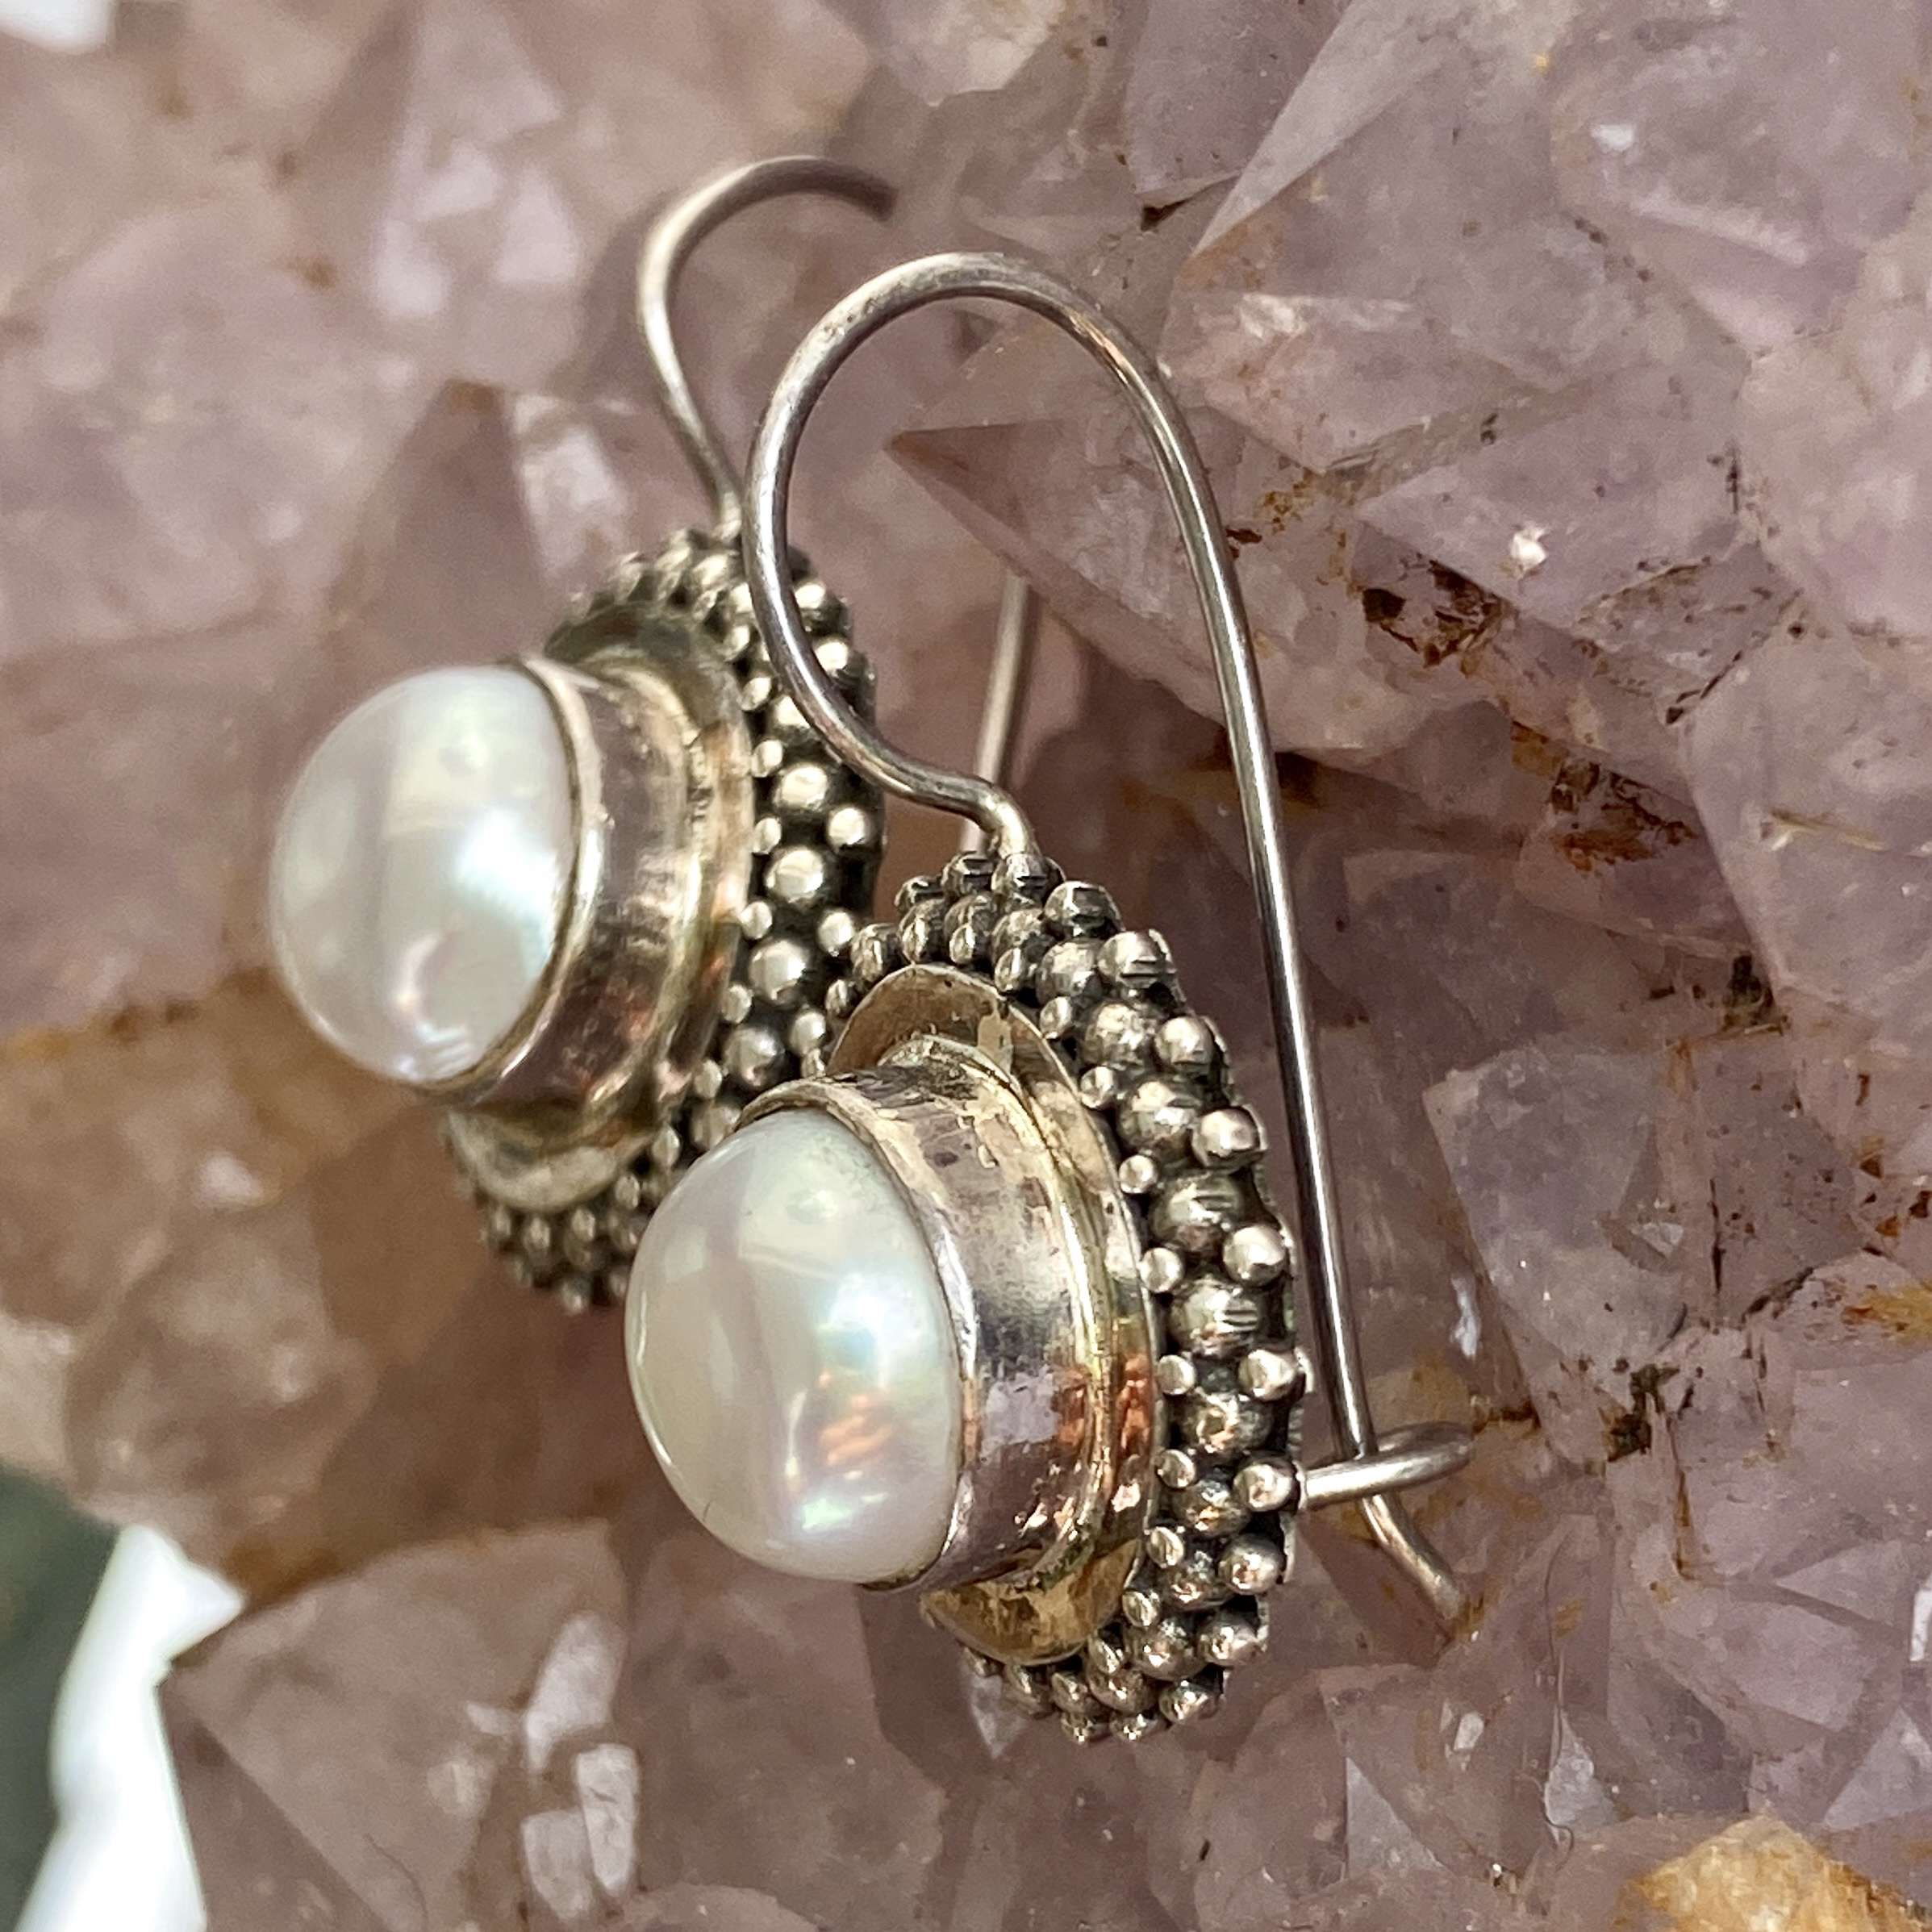 (HANDMADE 925 BALI SILVER GRANULATED EARRINGS WITH PEARL)